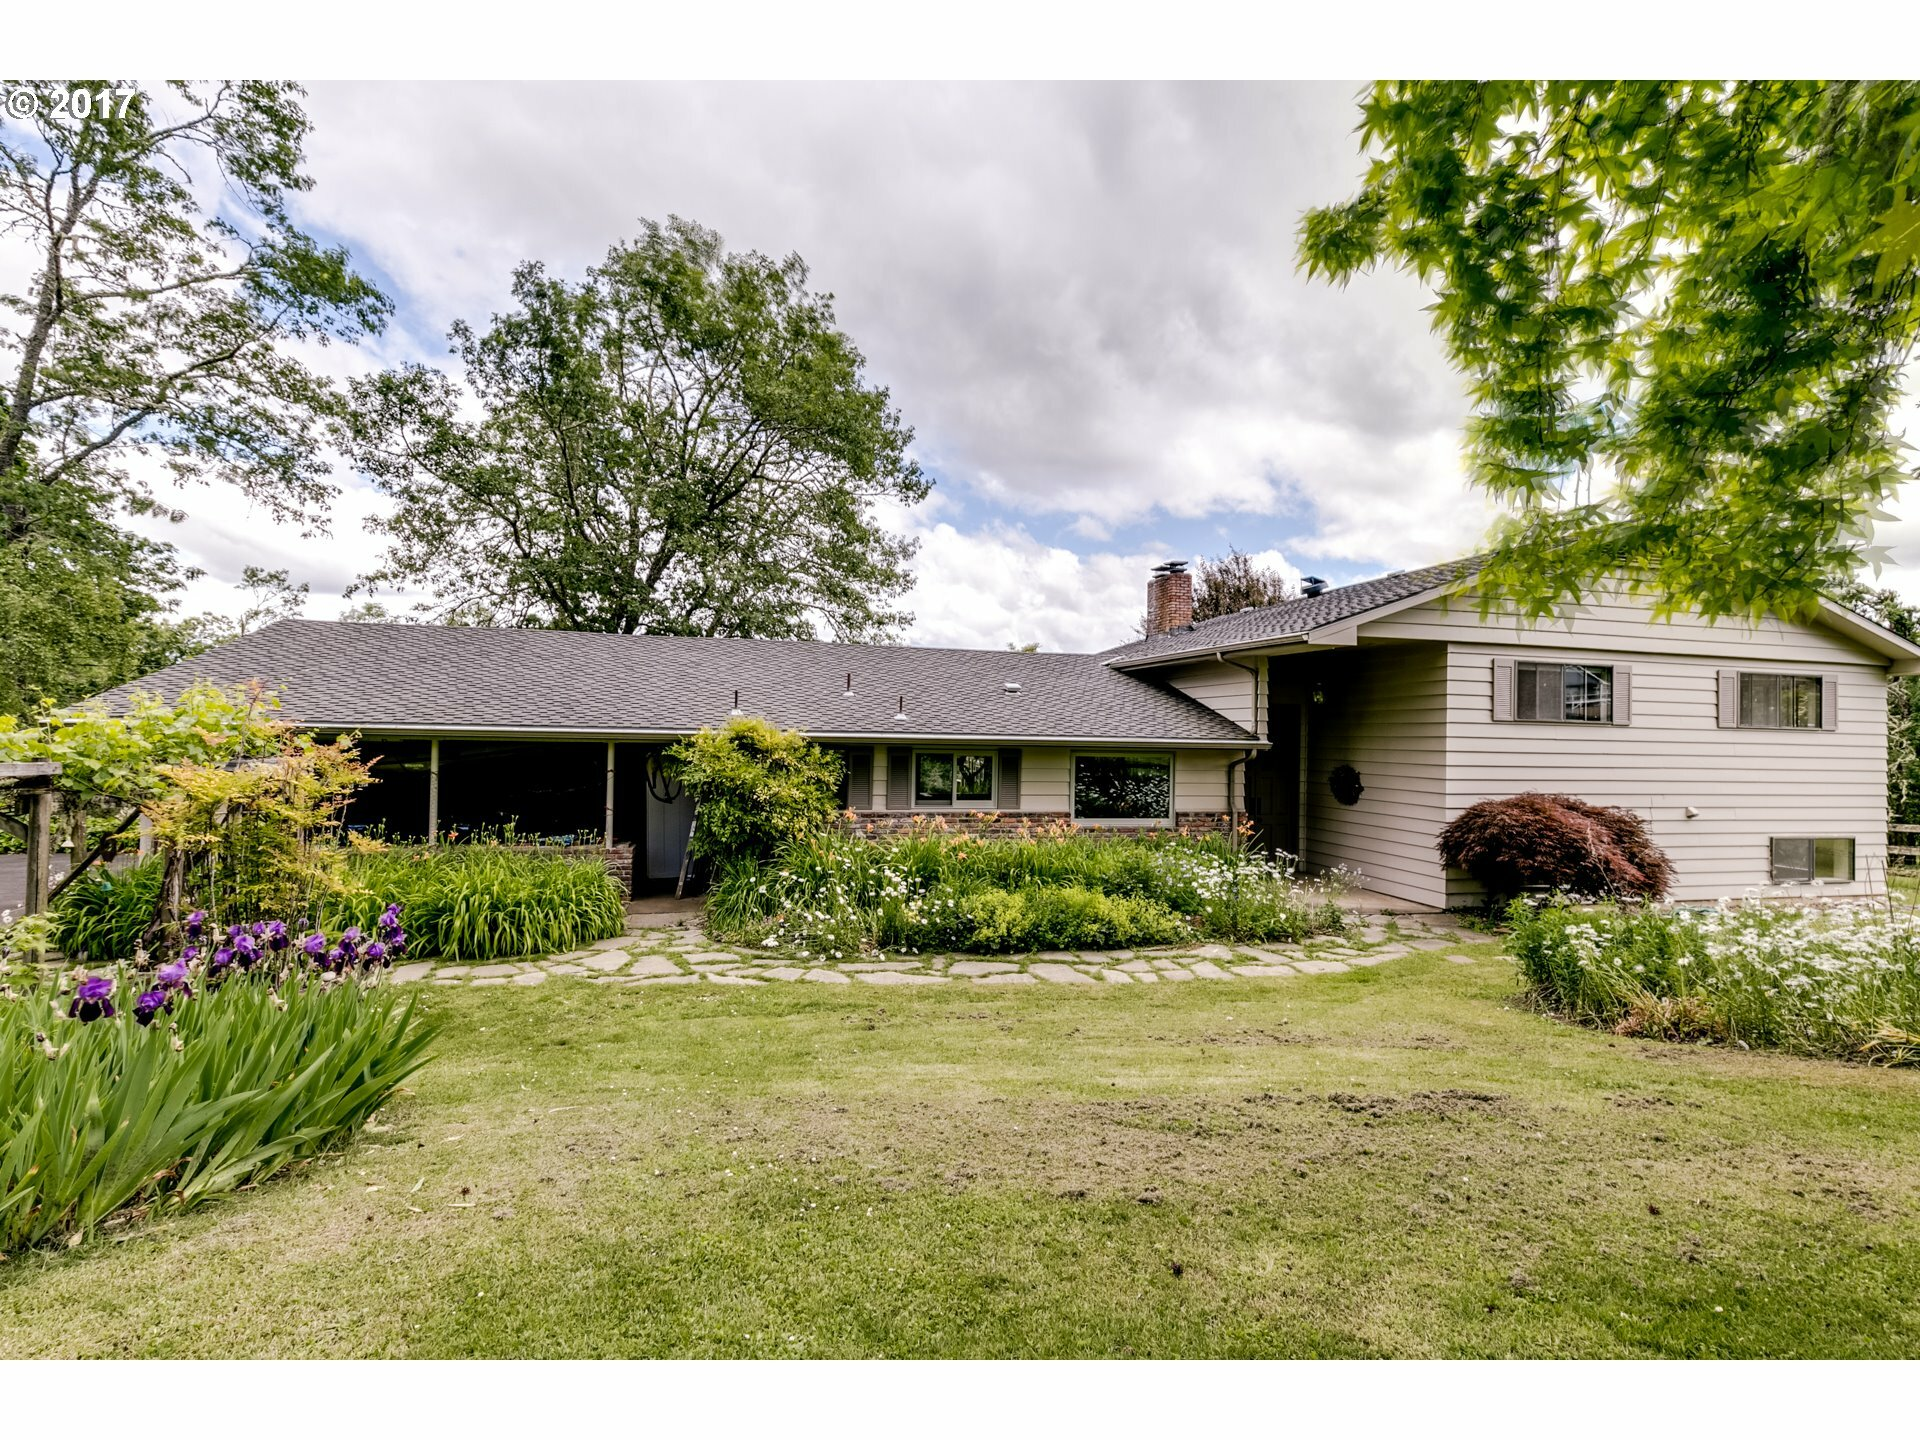 87451 Greenhill Rd, Eugene, OR - USA (photo 1)